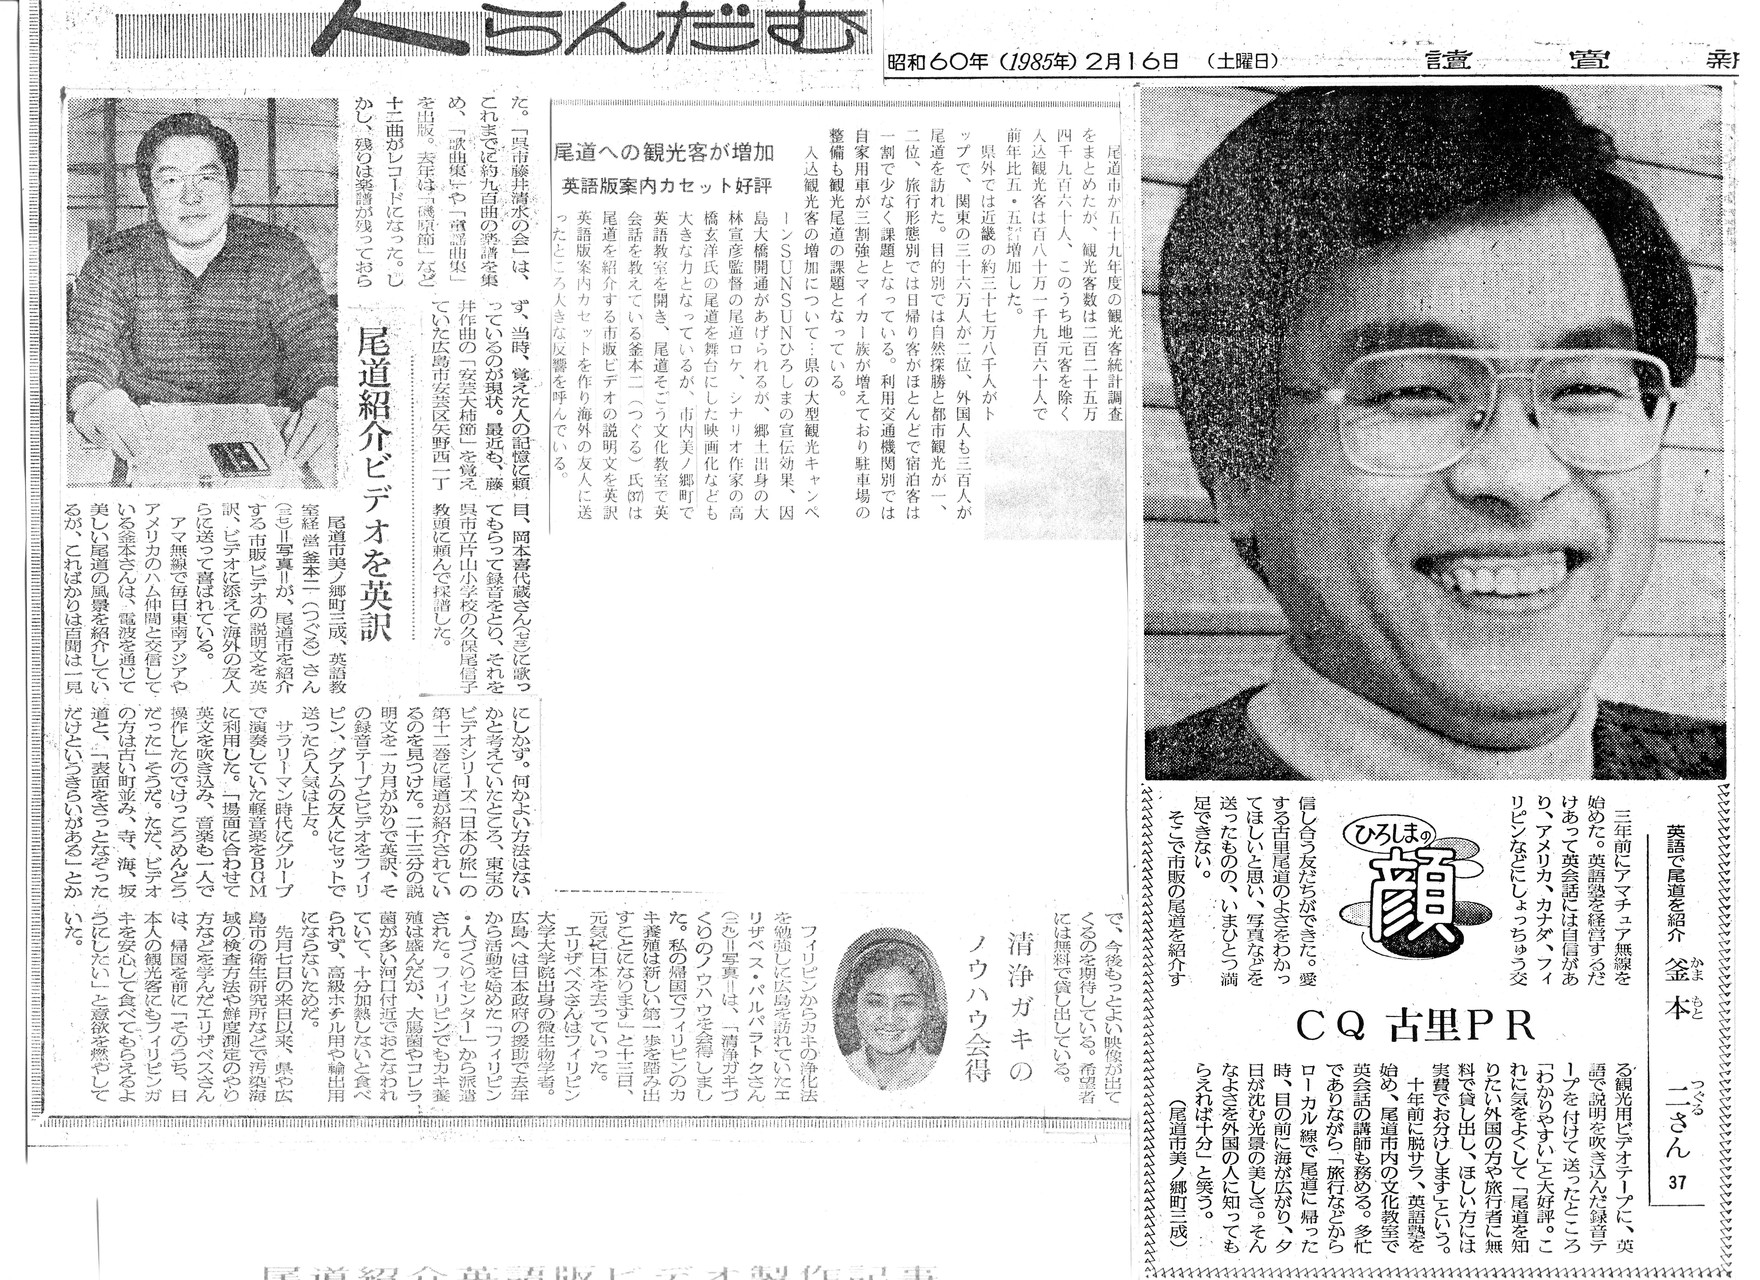 1985年 釜本 初めての新聞報道 The first newspaper coverage of Karl Kamamoto in 1985